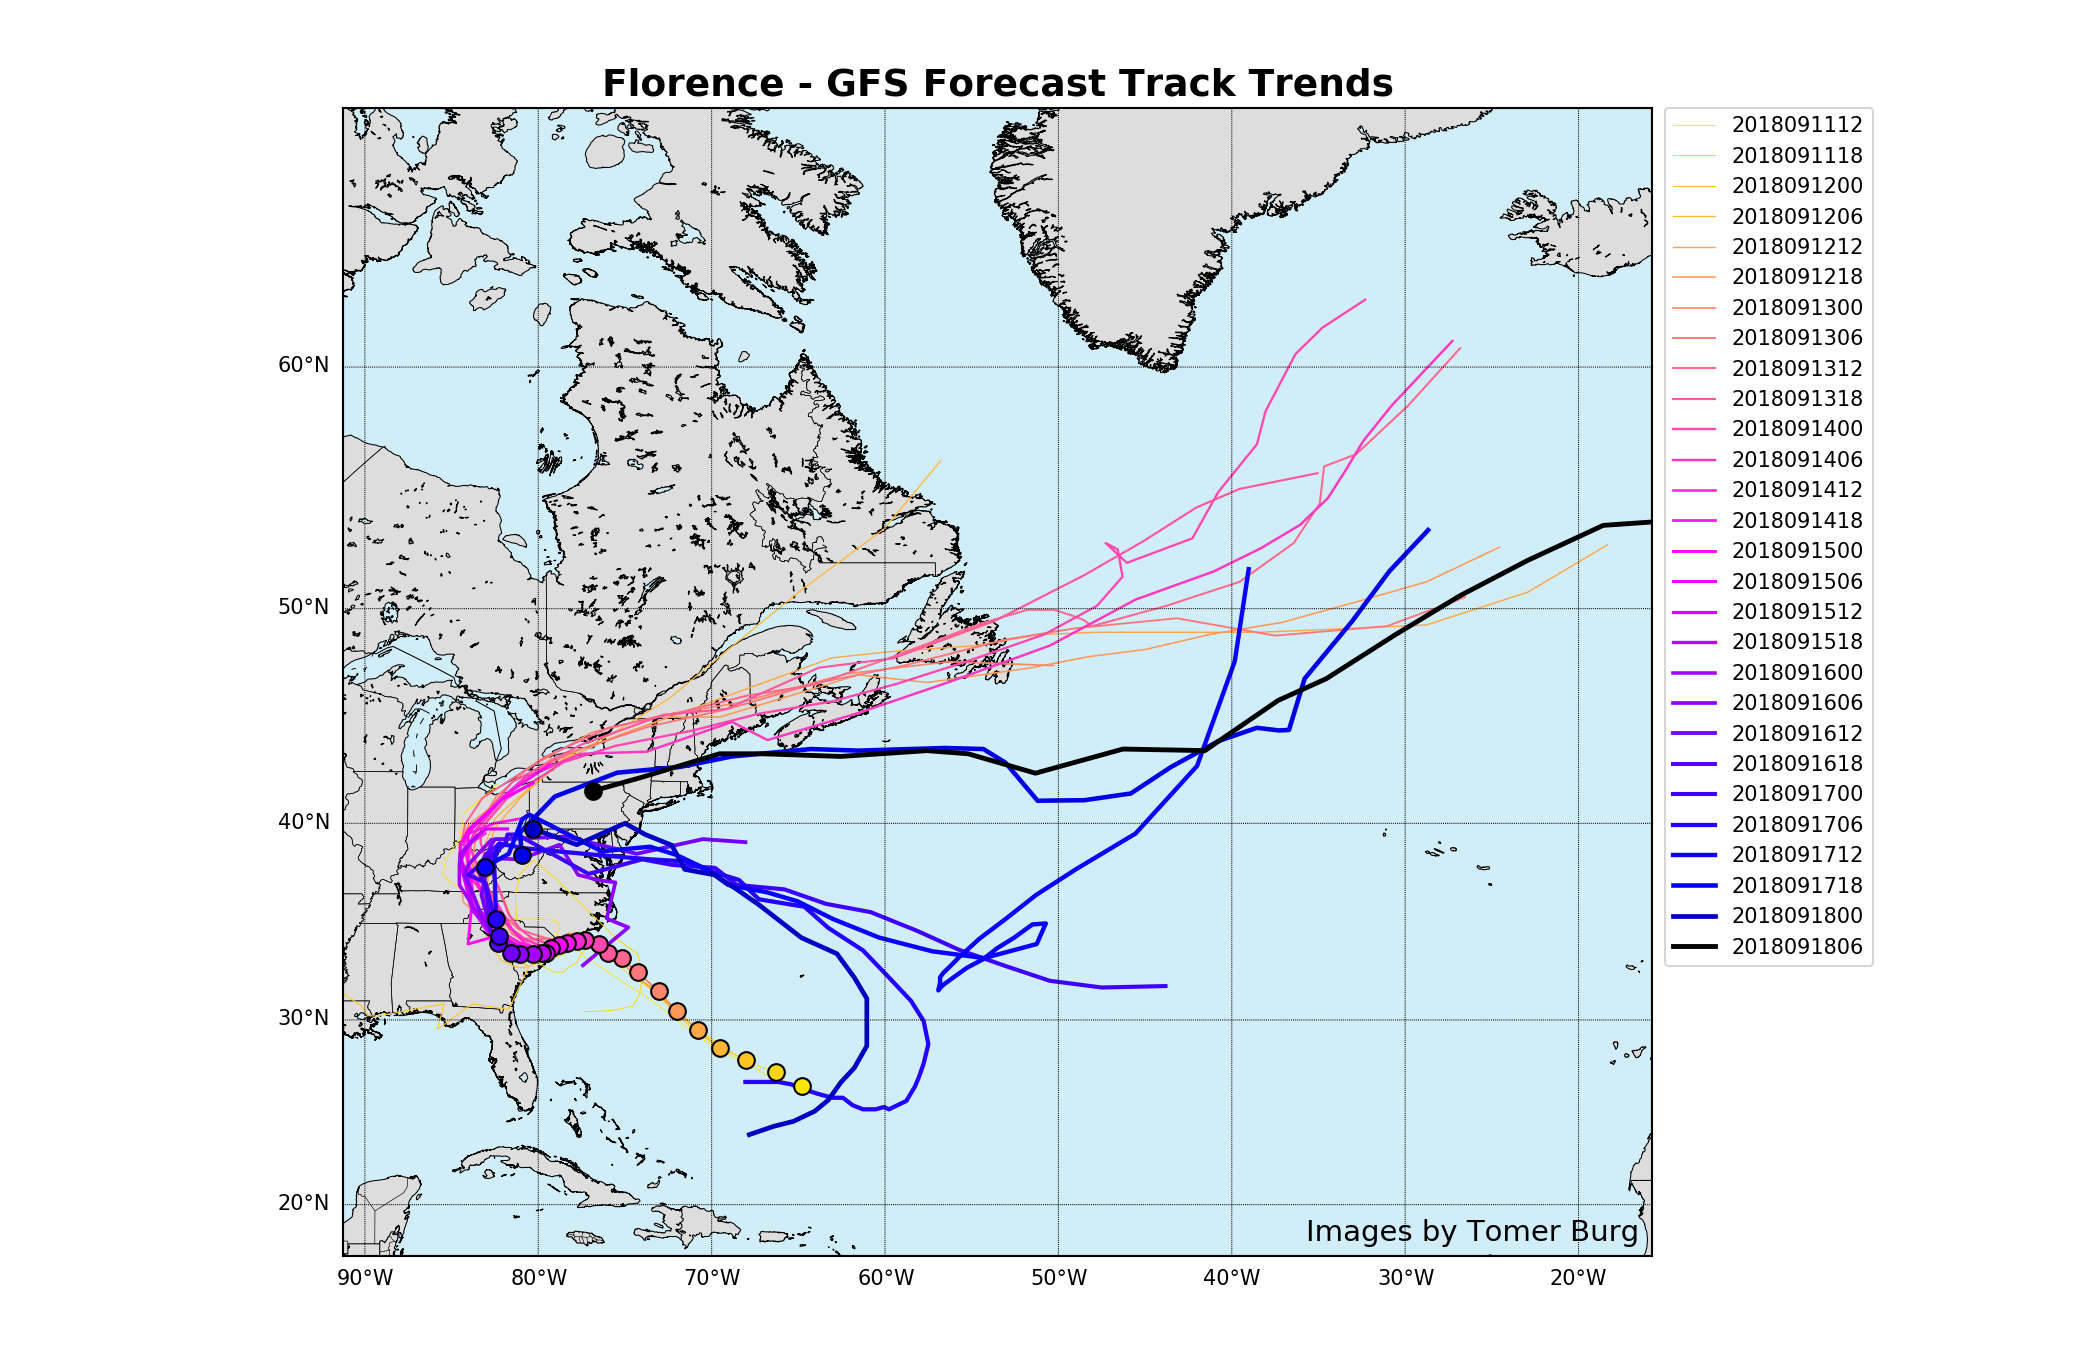 FLORENCE: East Coast Threat or Does She Sleep With the Fishes? - Page 4 Florence_track